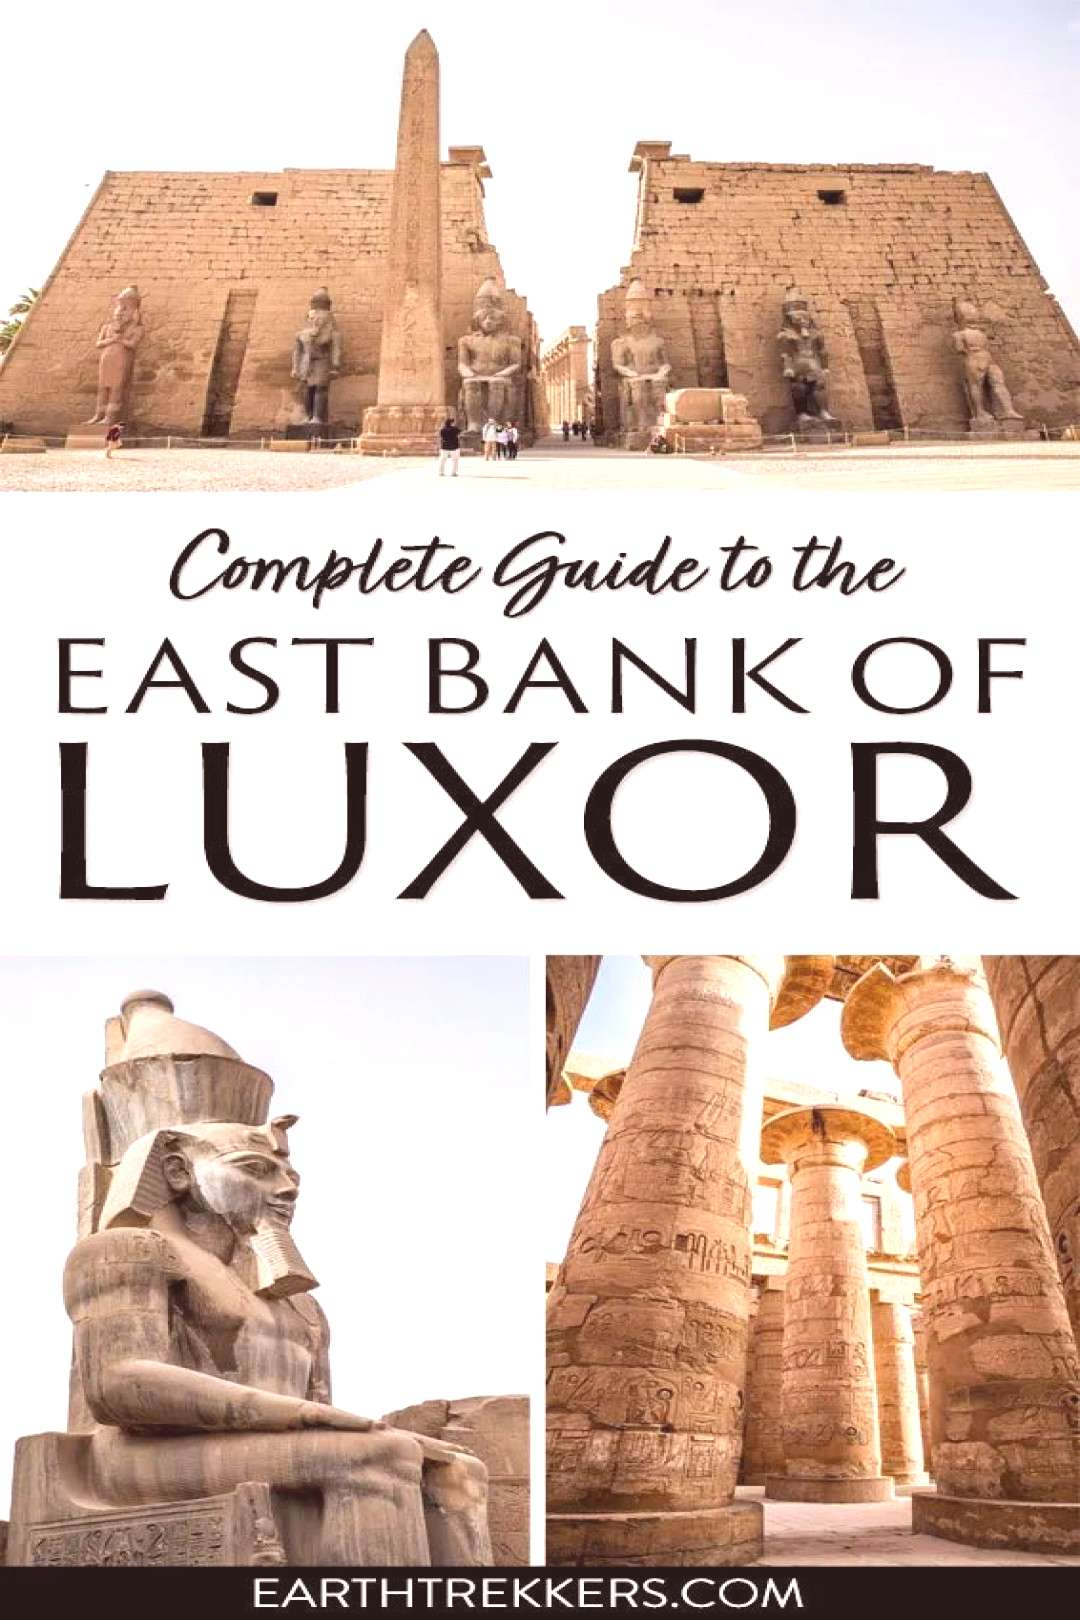 Complete Guide to the East Bank of Luxor, Egypt -  Complete Guide to the East Bank of Luxor, Egypt.